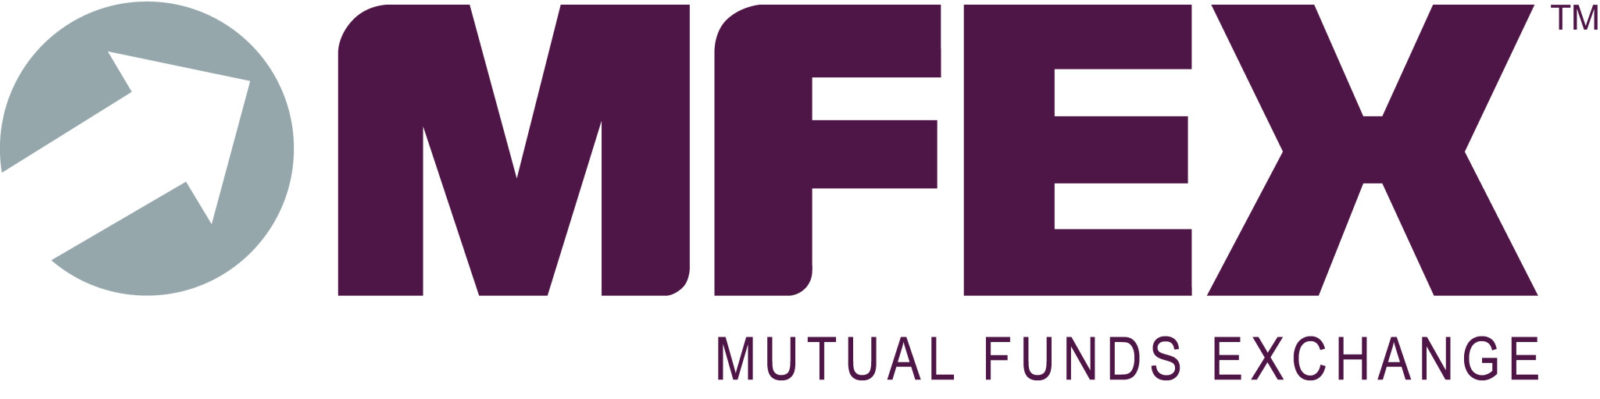 MFEX renforce sa présence internationale avec l'acquisition de la Global Fund Platform (GFP) de RBC I&TS